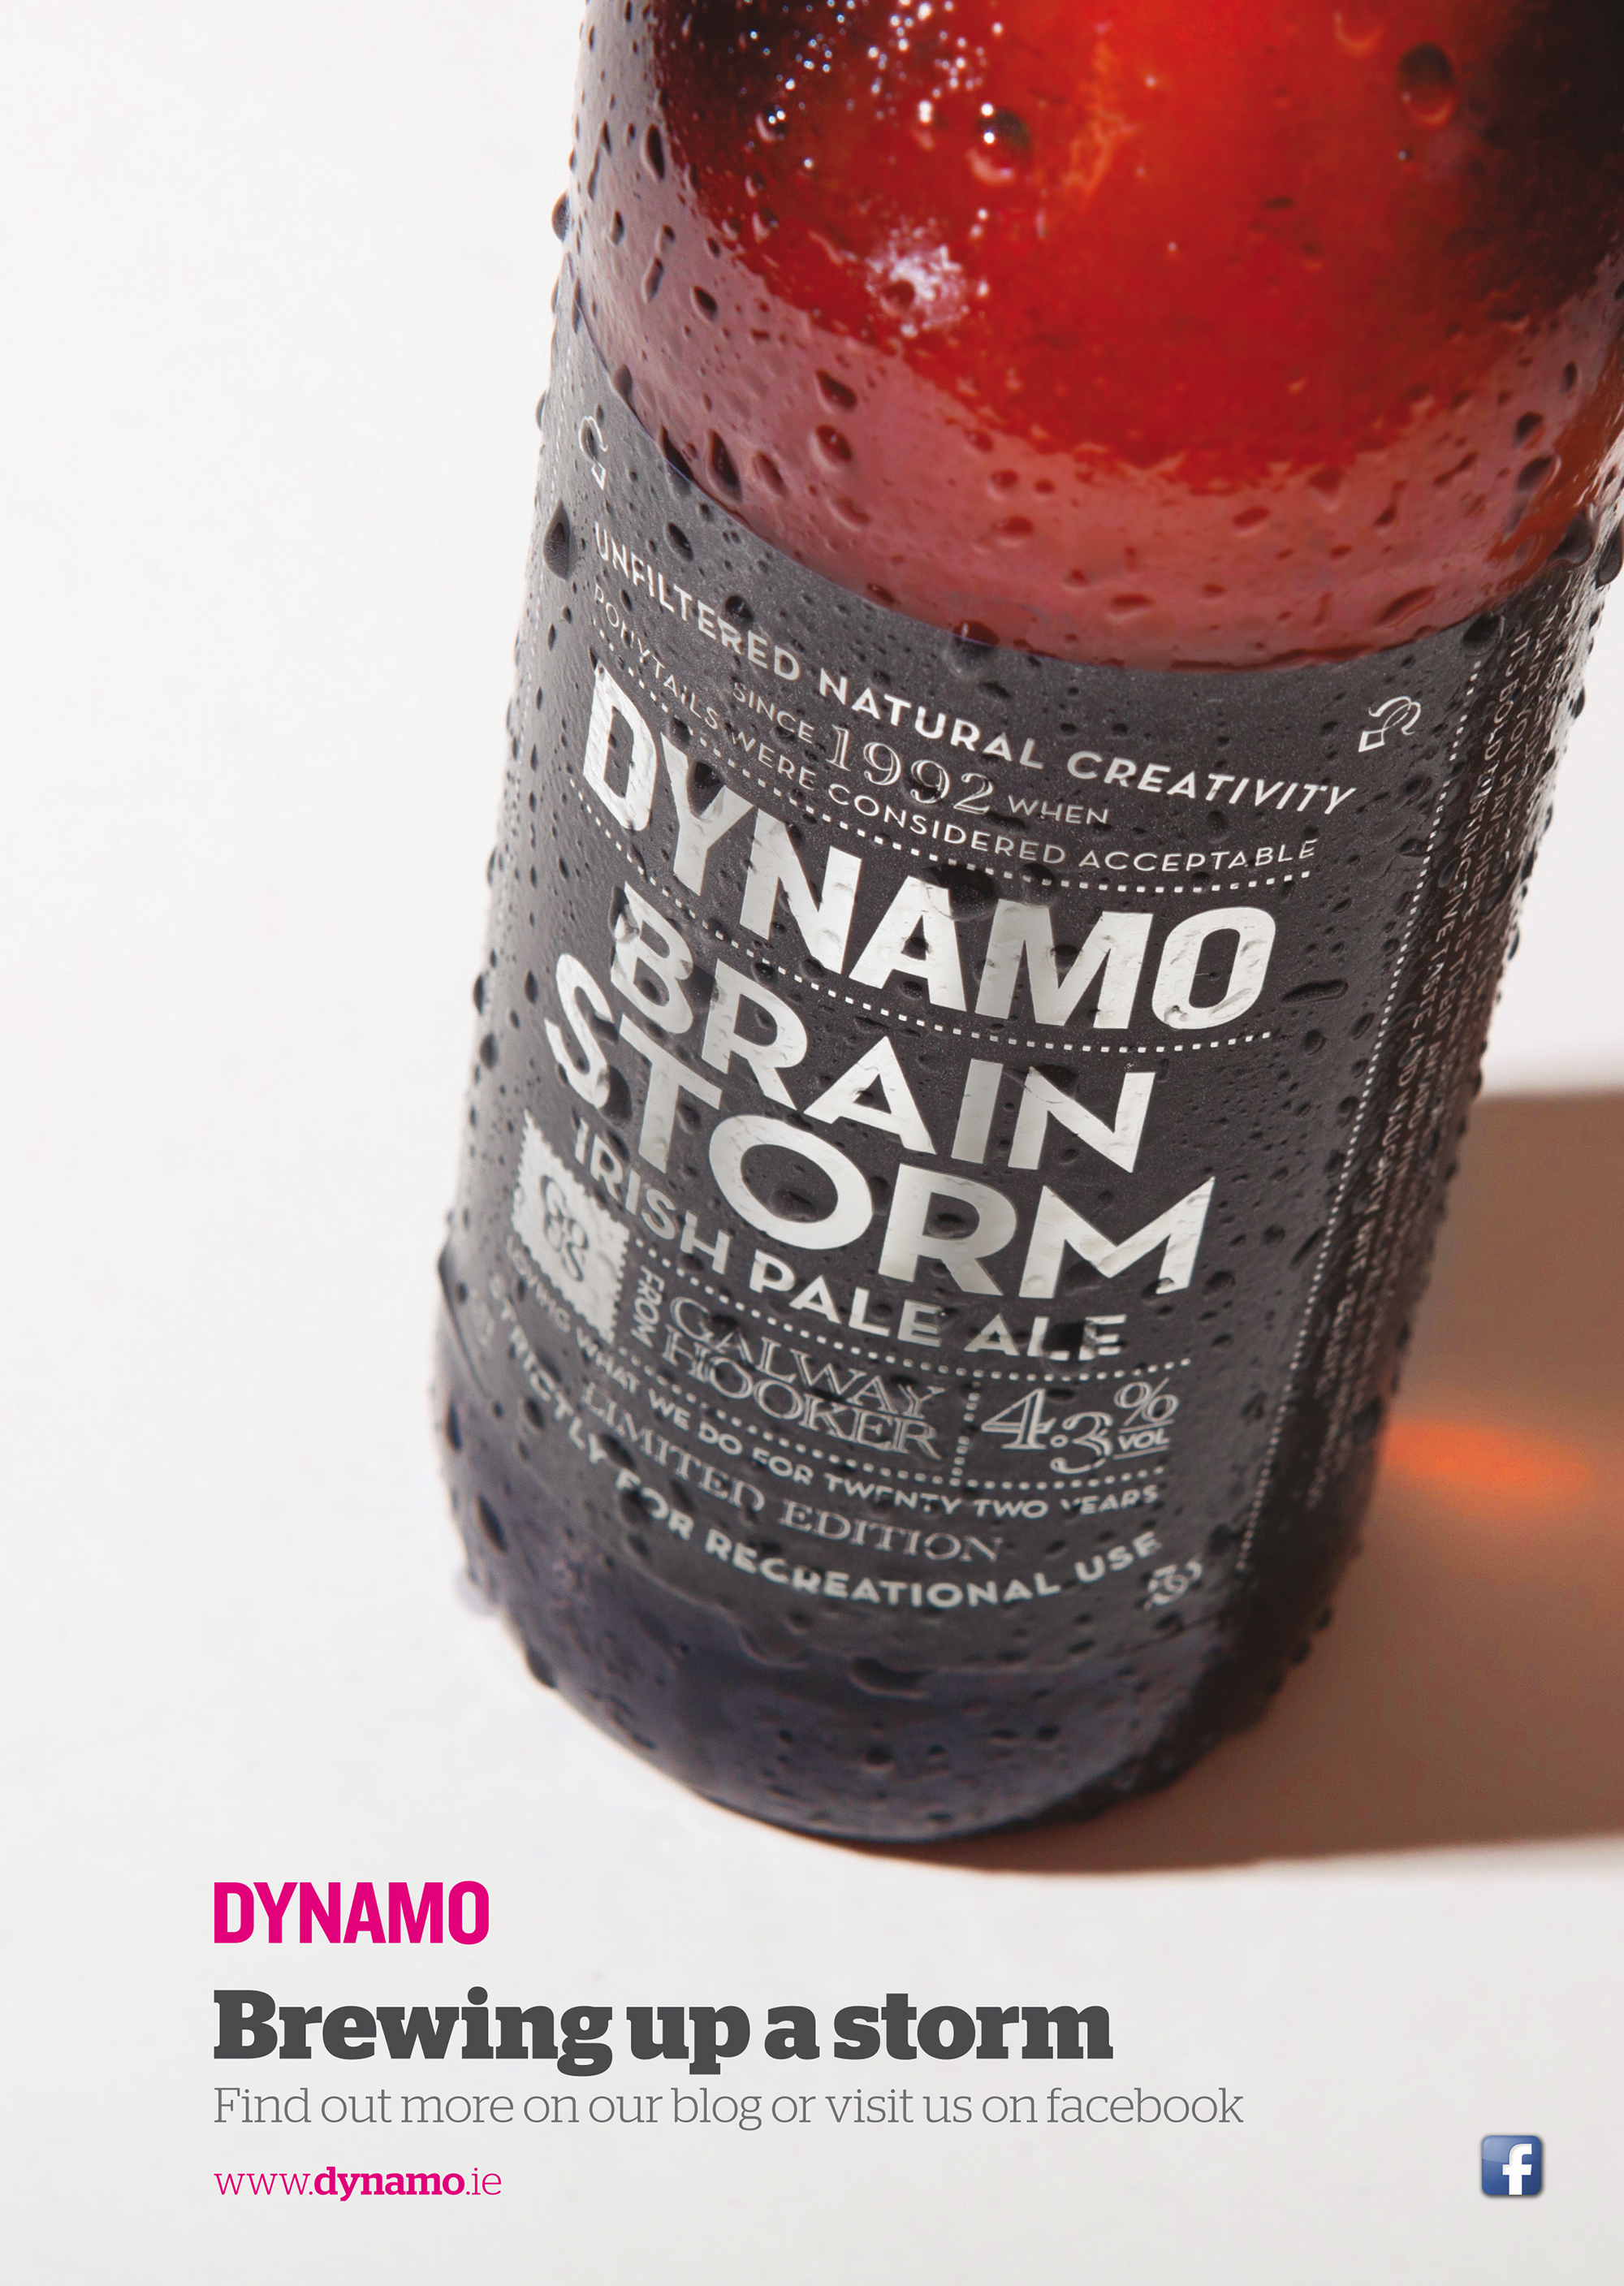 Cover image: Dynamo Beer